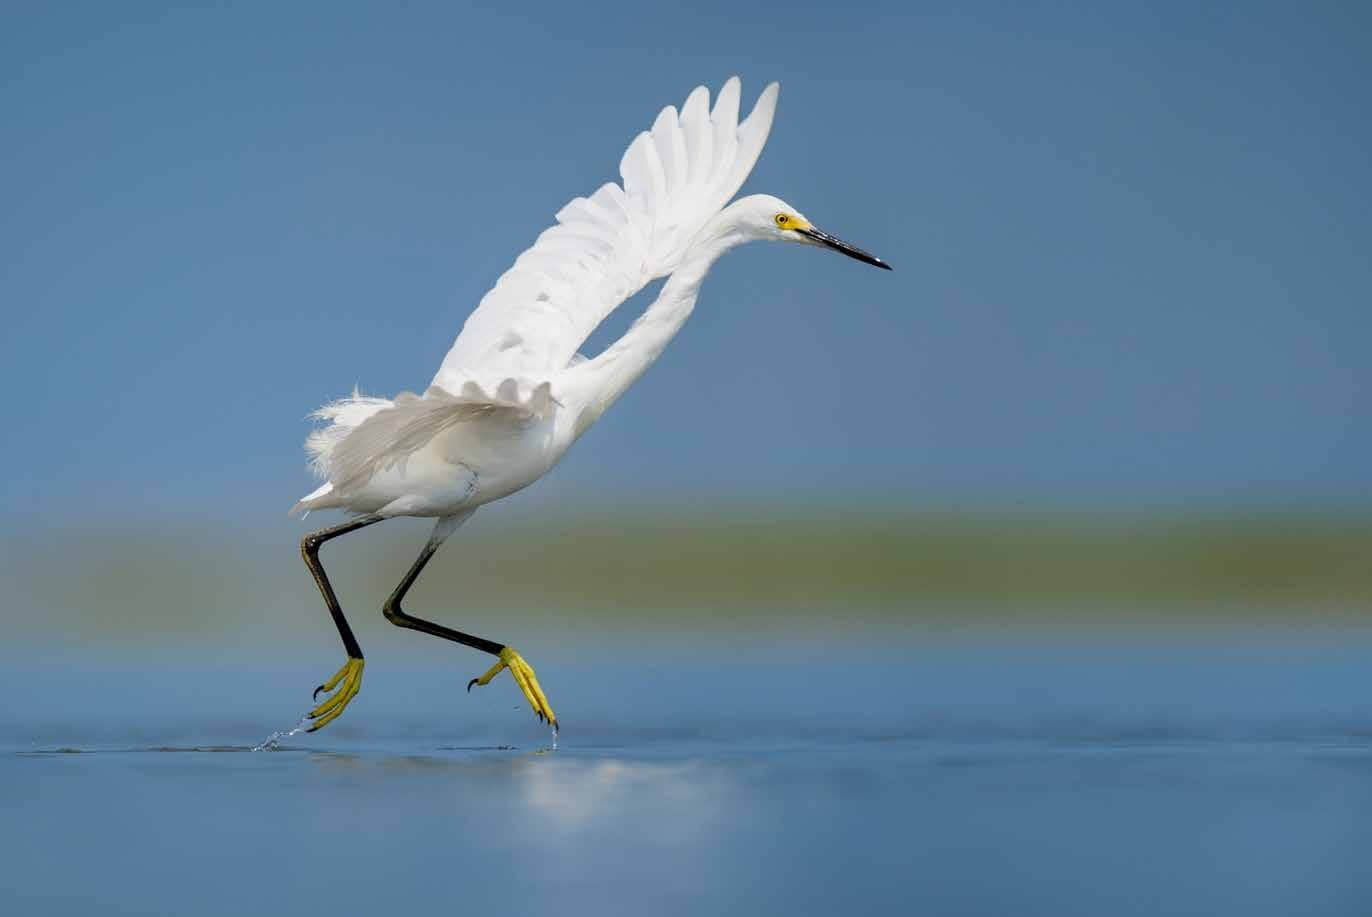 How To Get That Perfect Bird Image?